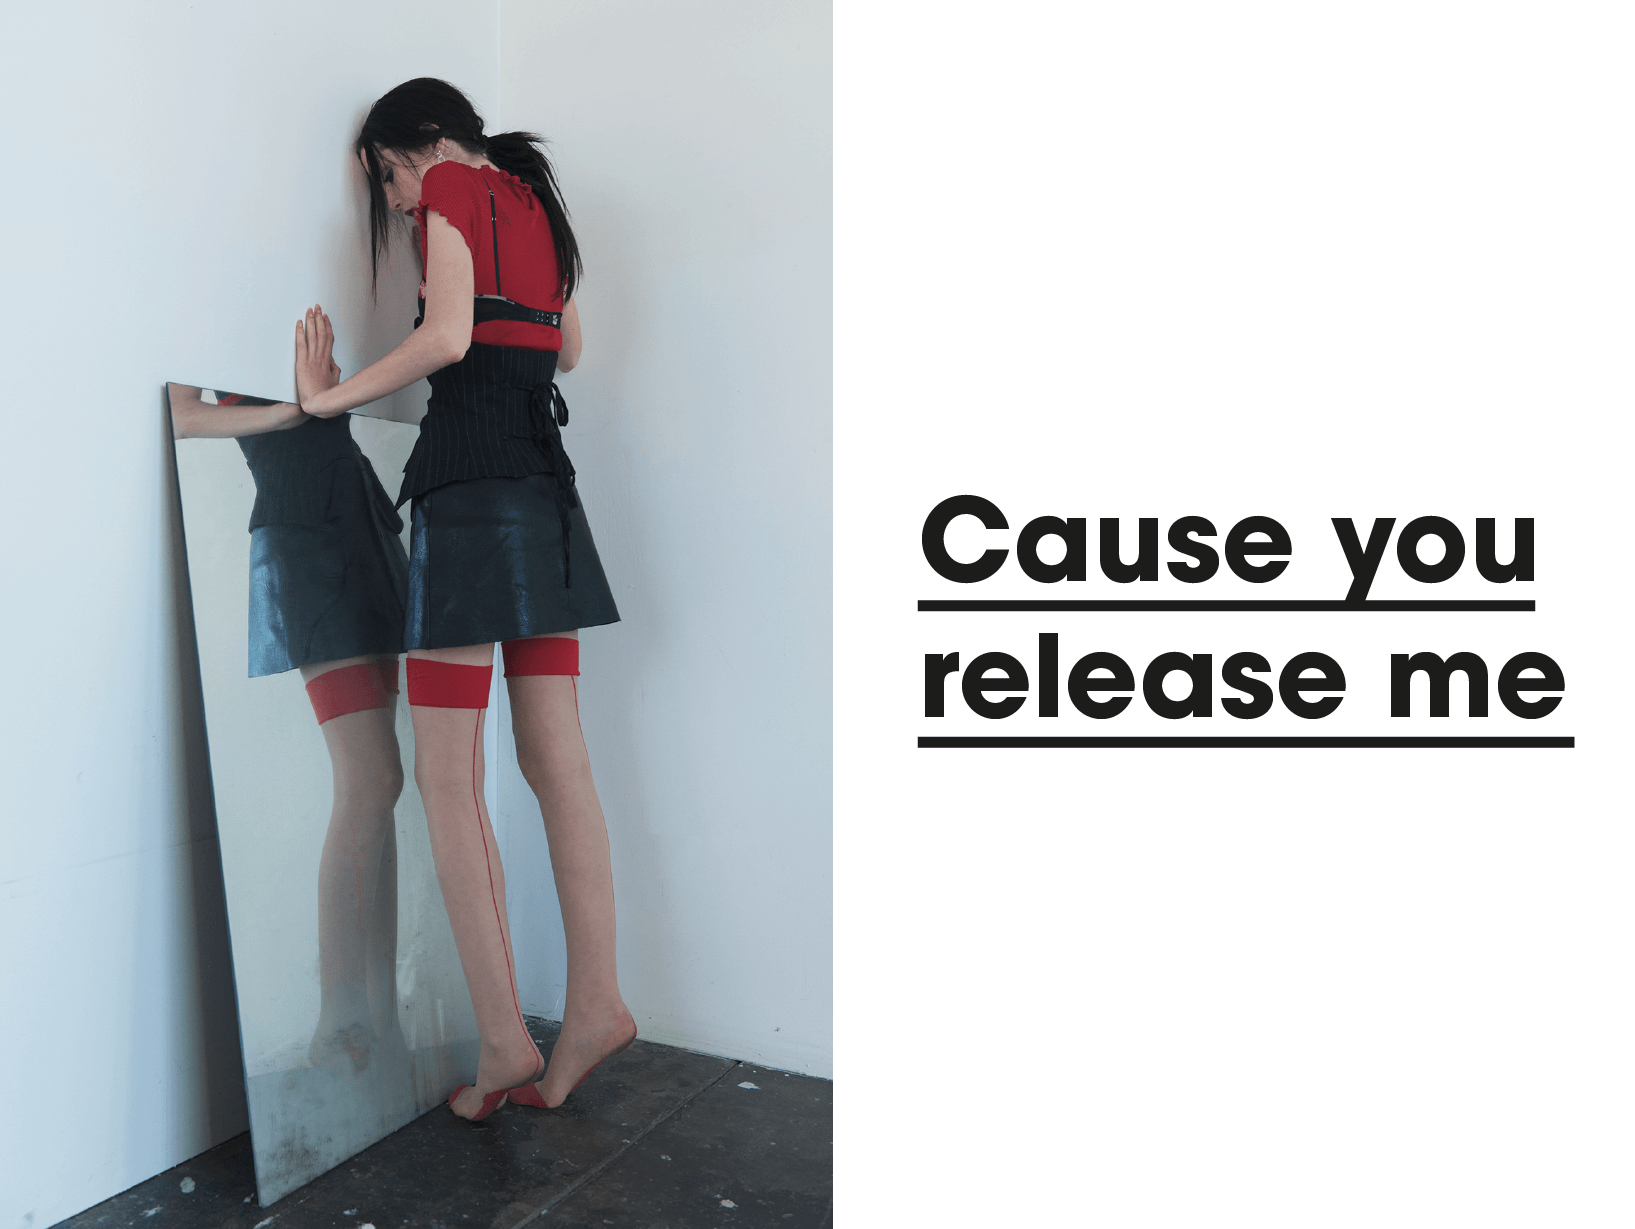 Cause you release me